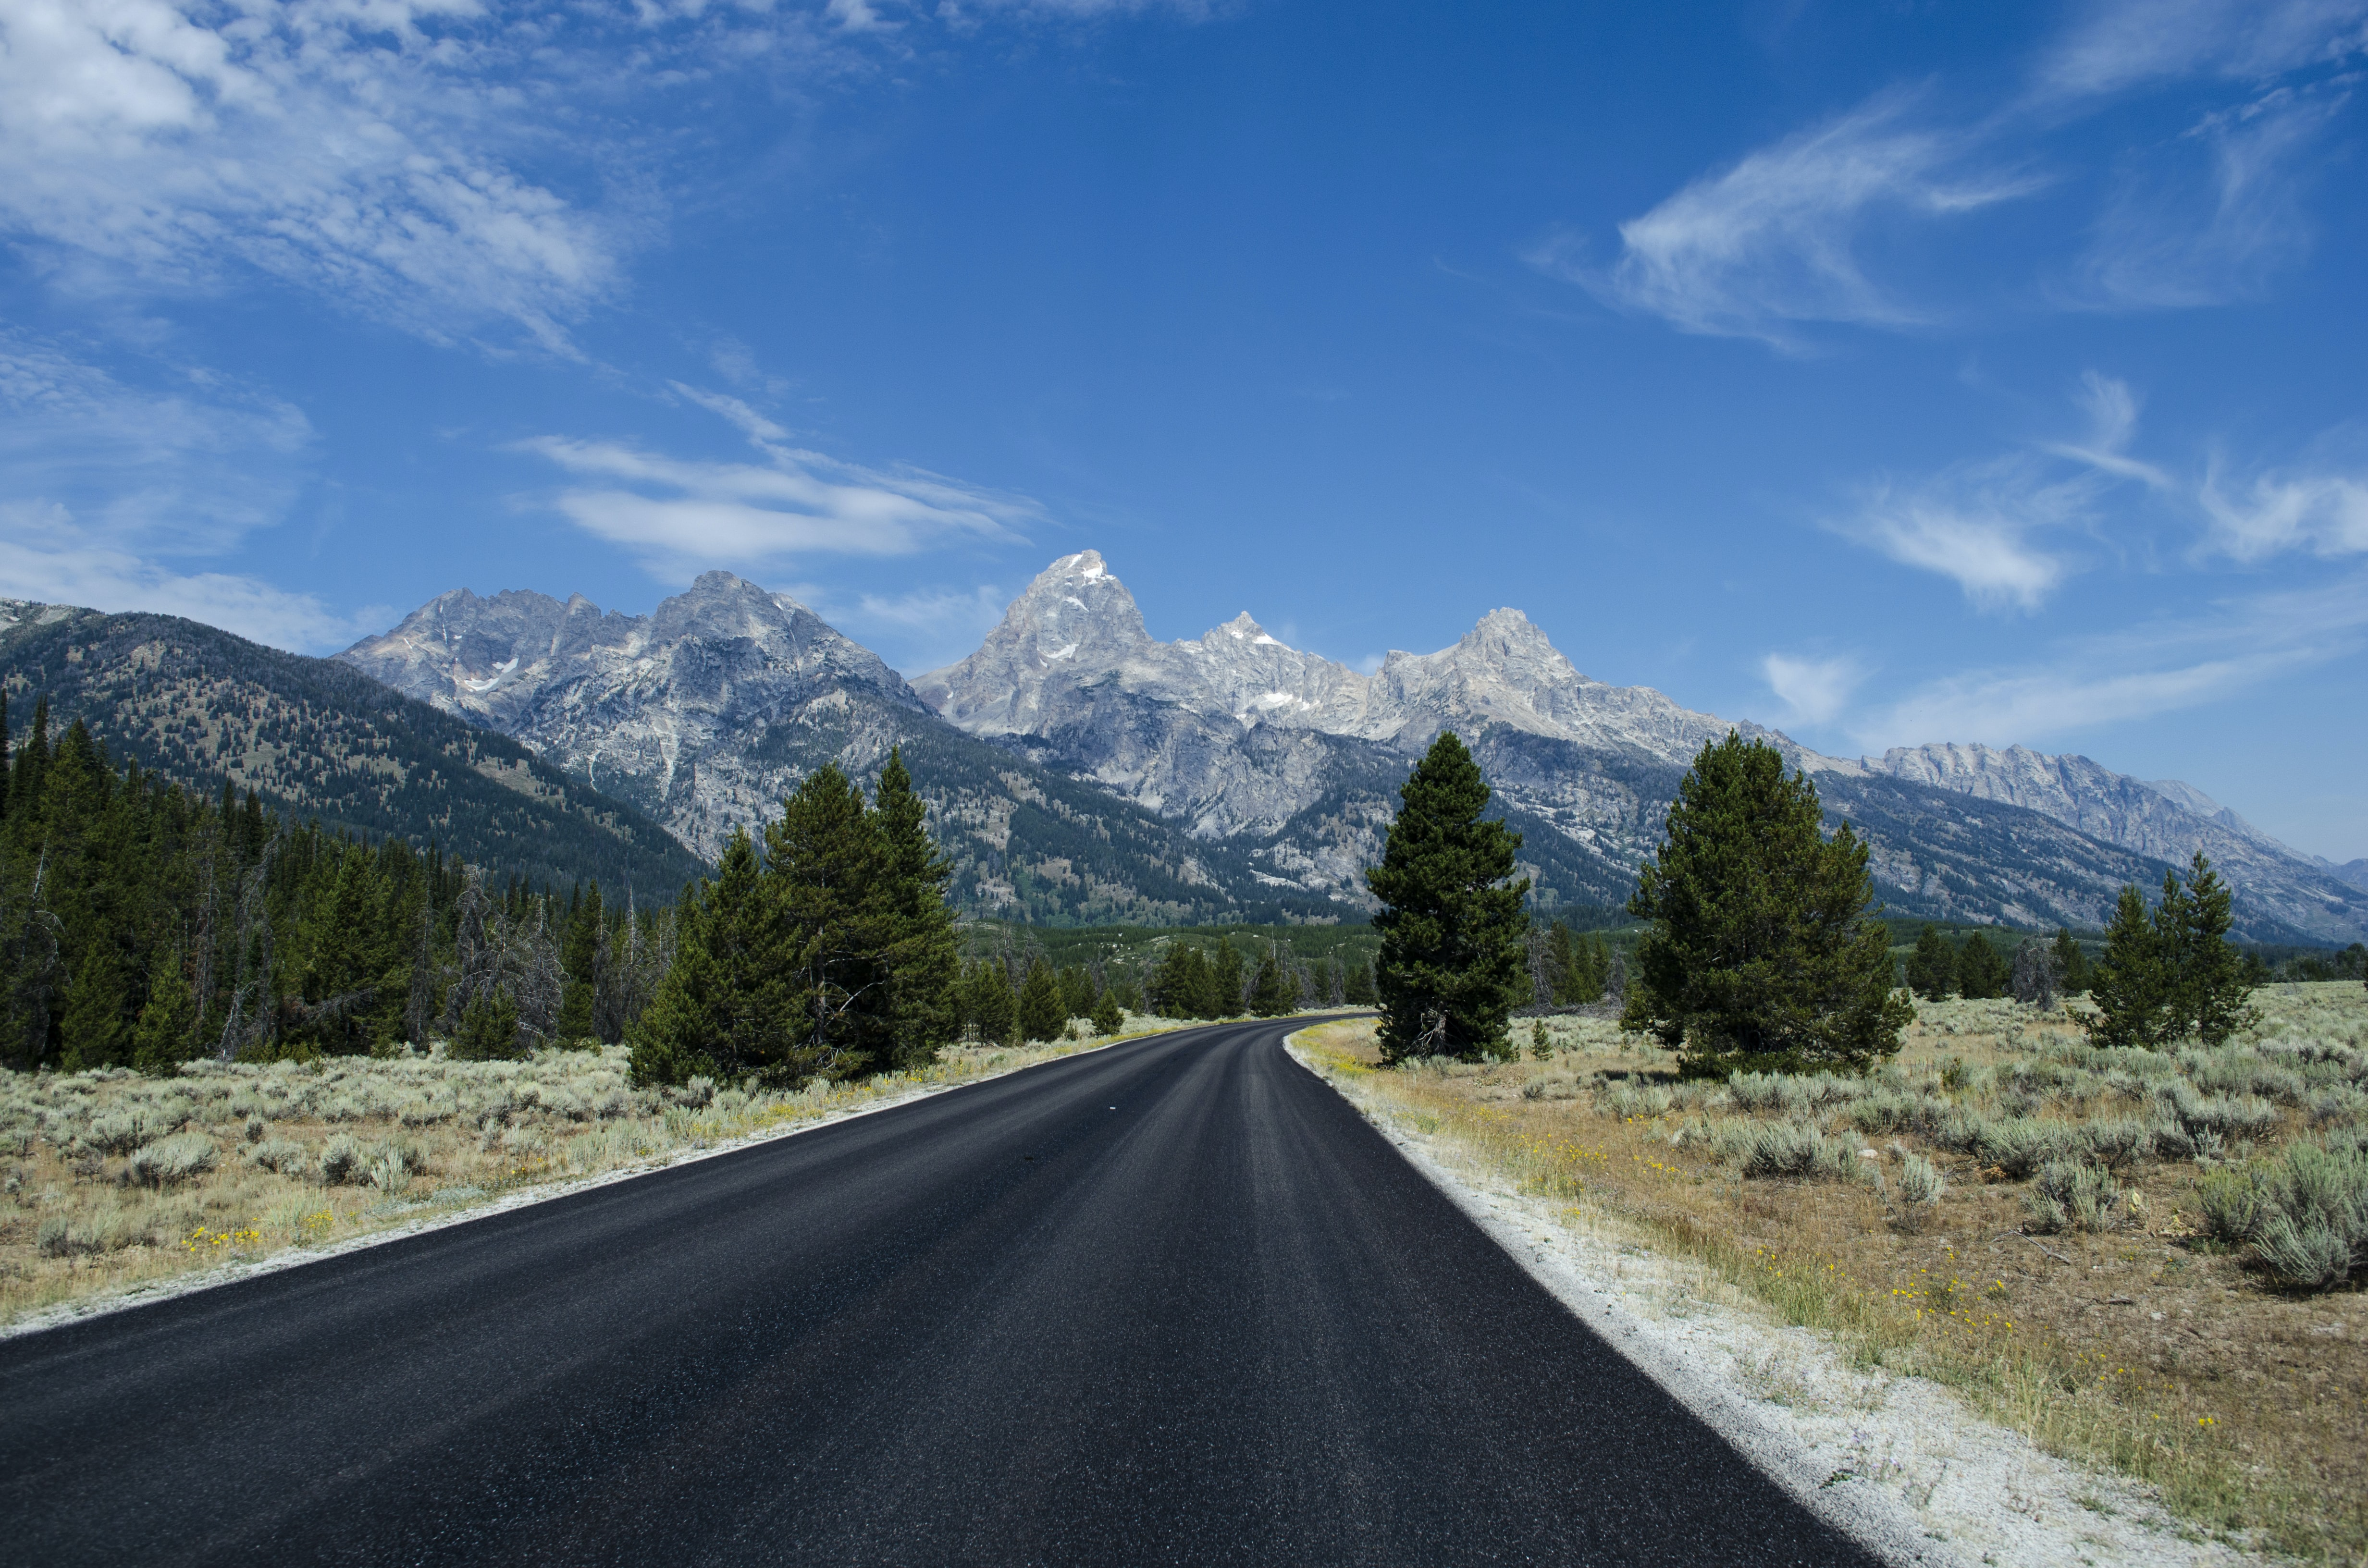 A winding road with green pine trees and a mountain range in the distance at Grand Teton